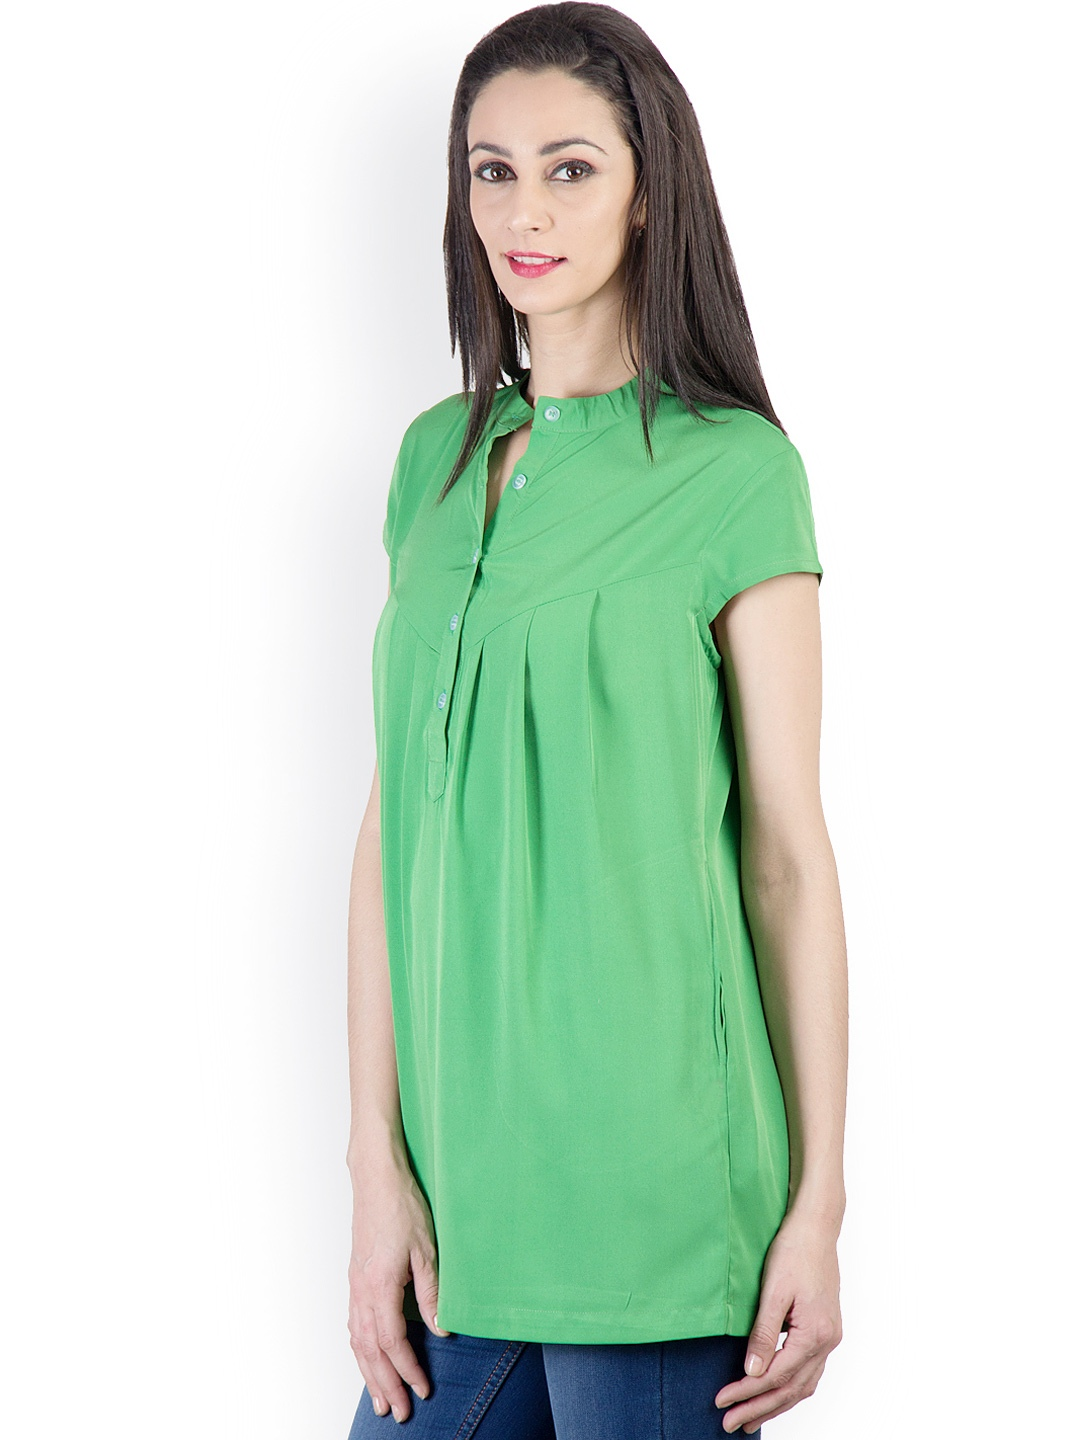 Shop Green women's blouses and shirts at New York & Company. Choose from our dress, casual, and work collections, including the Madison Shirt, a favorite. Green Shirts & Blouses. Our stunning tunic tops, long-sleeved blouses and cozy knits are just the thing to help beat the chill. Cool enough for an extra layer?